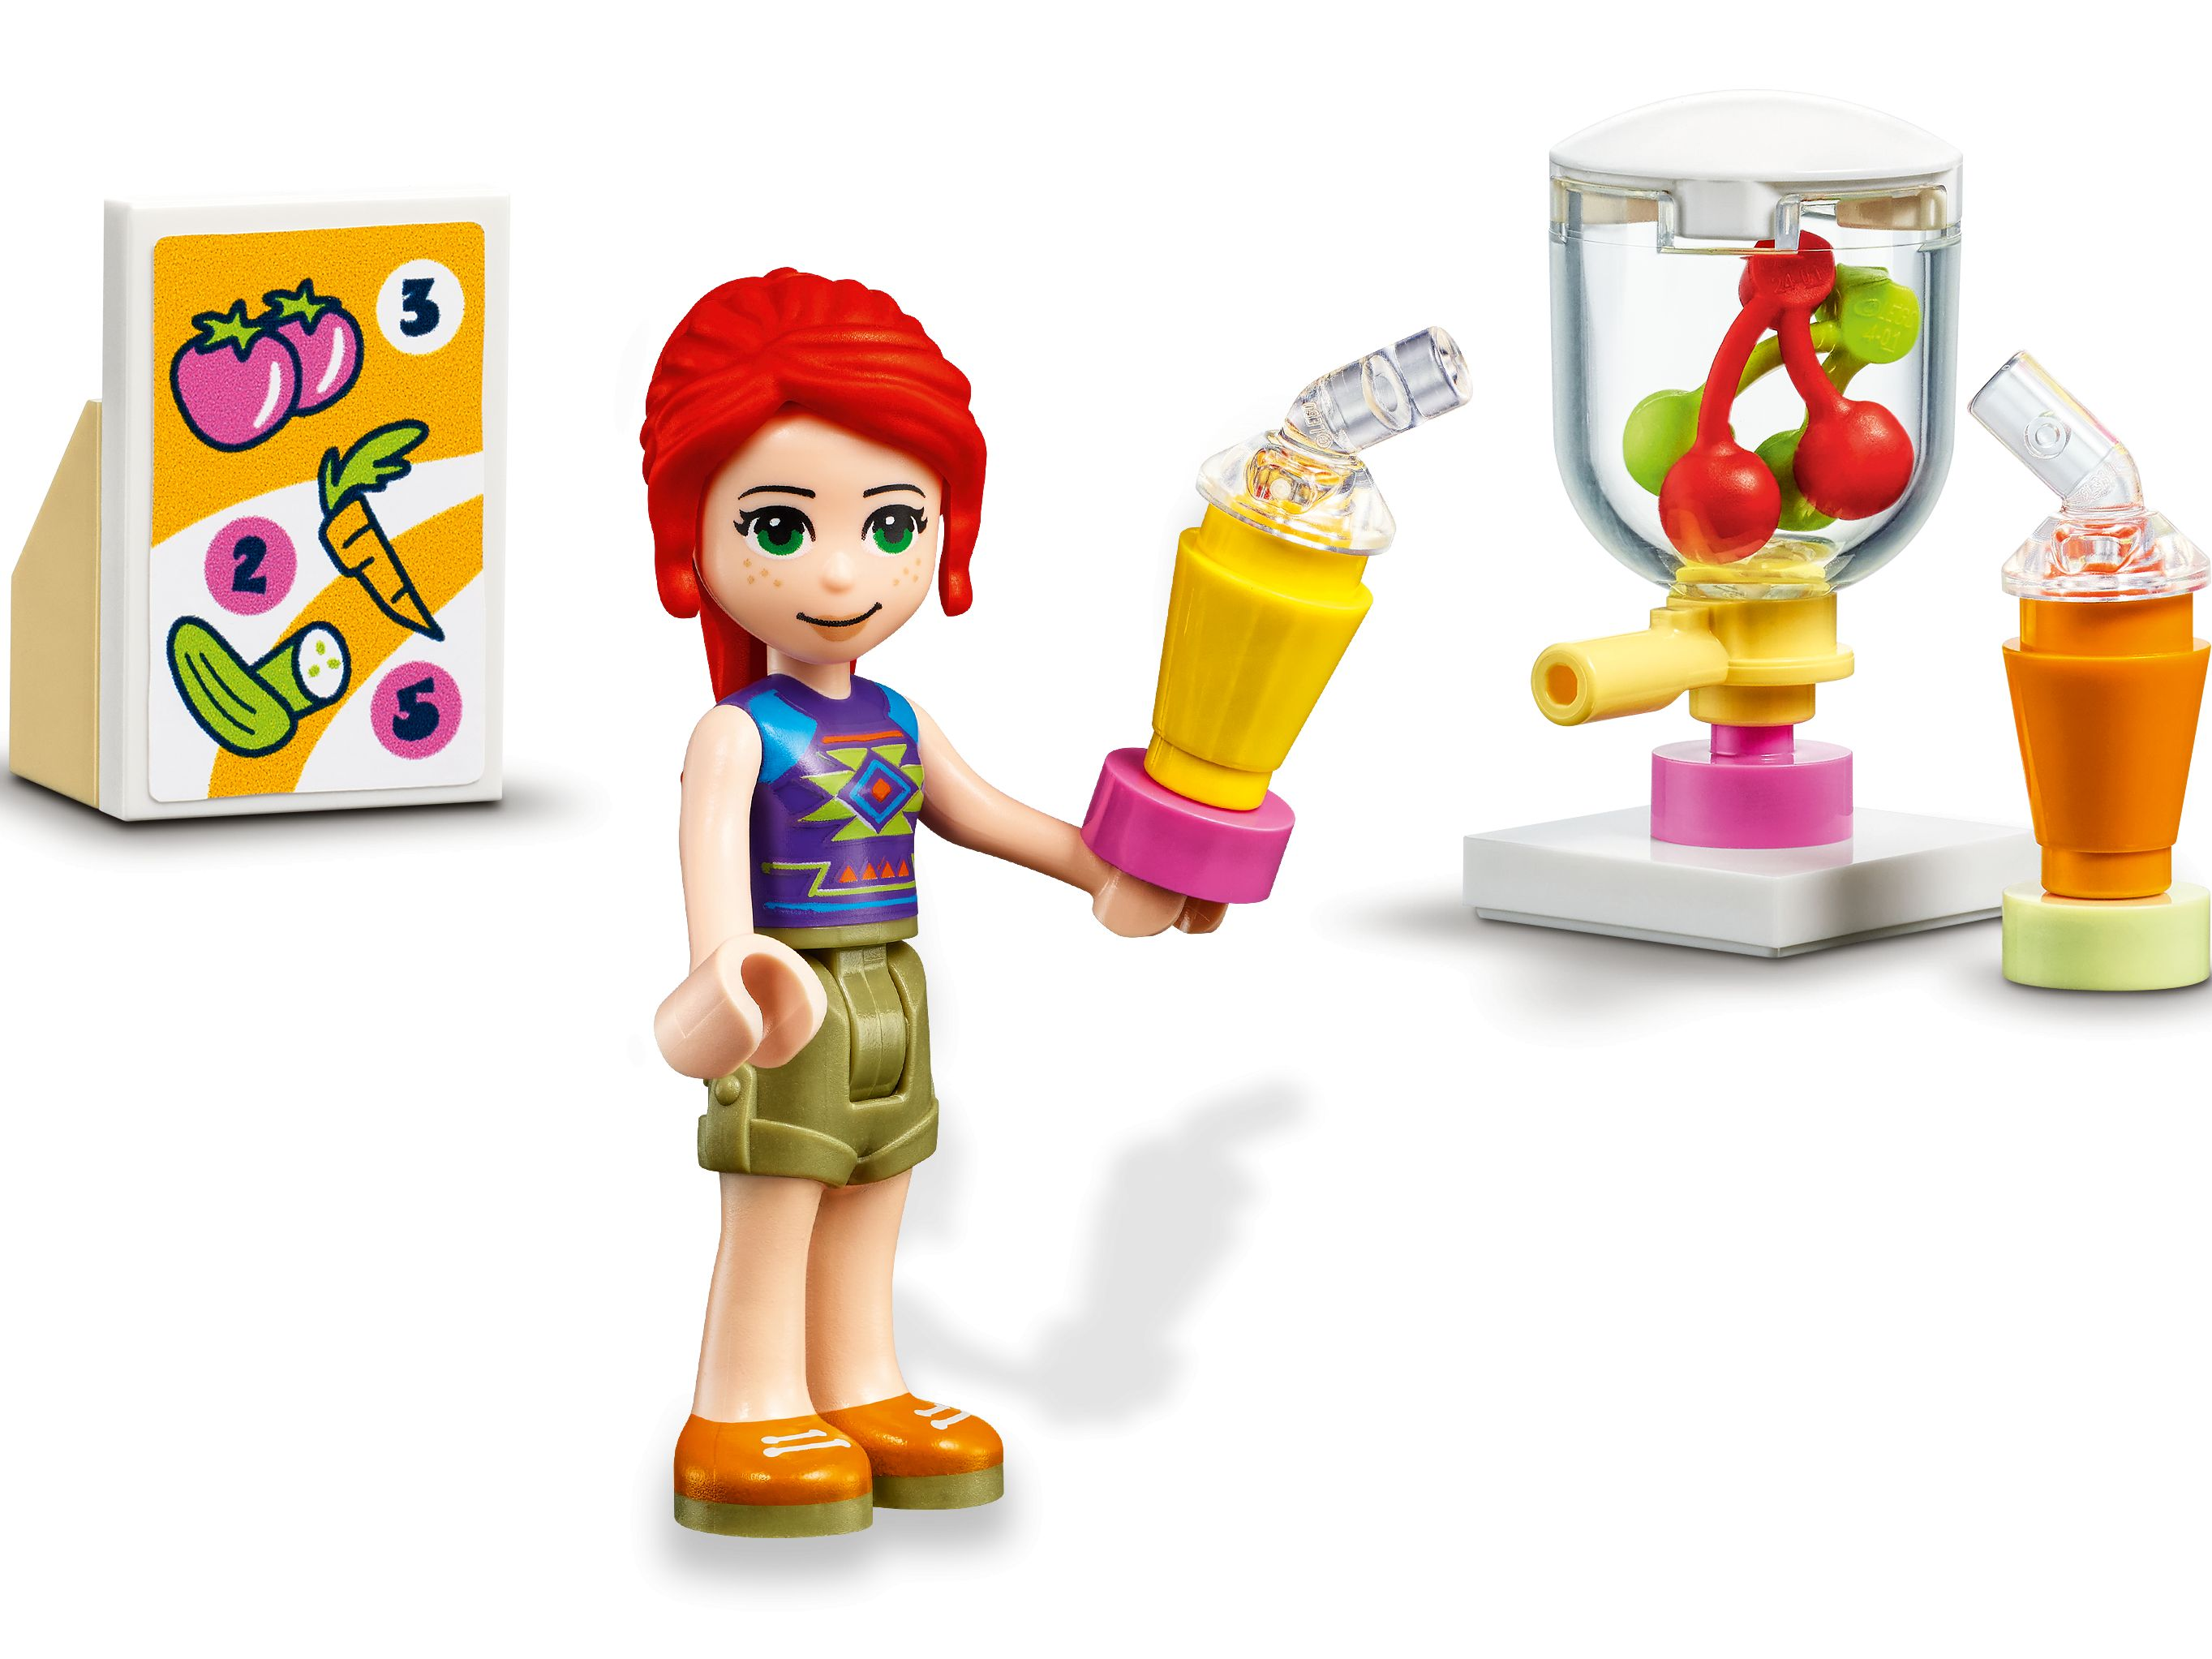 LEGO Friends 41444 Heartlake City Bio-Café LEGO_41444_alt4.jpg